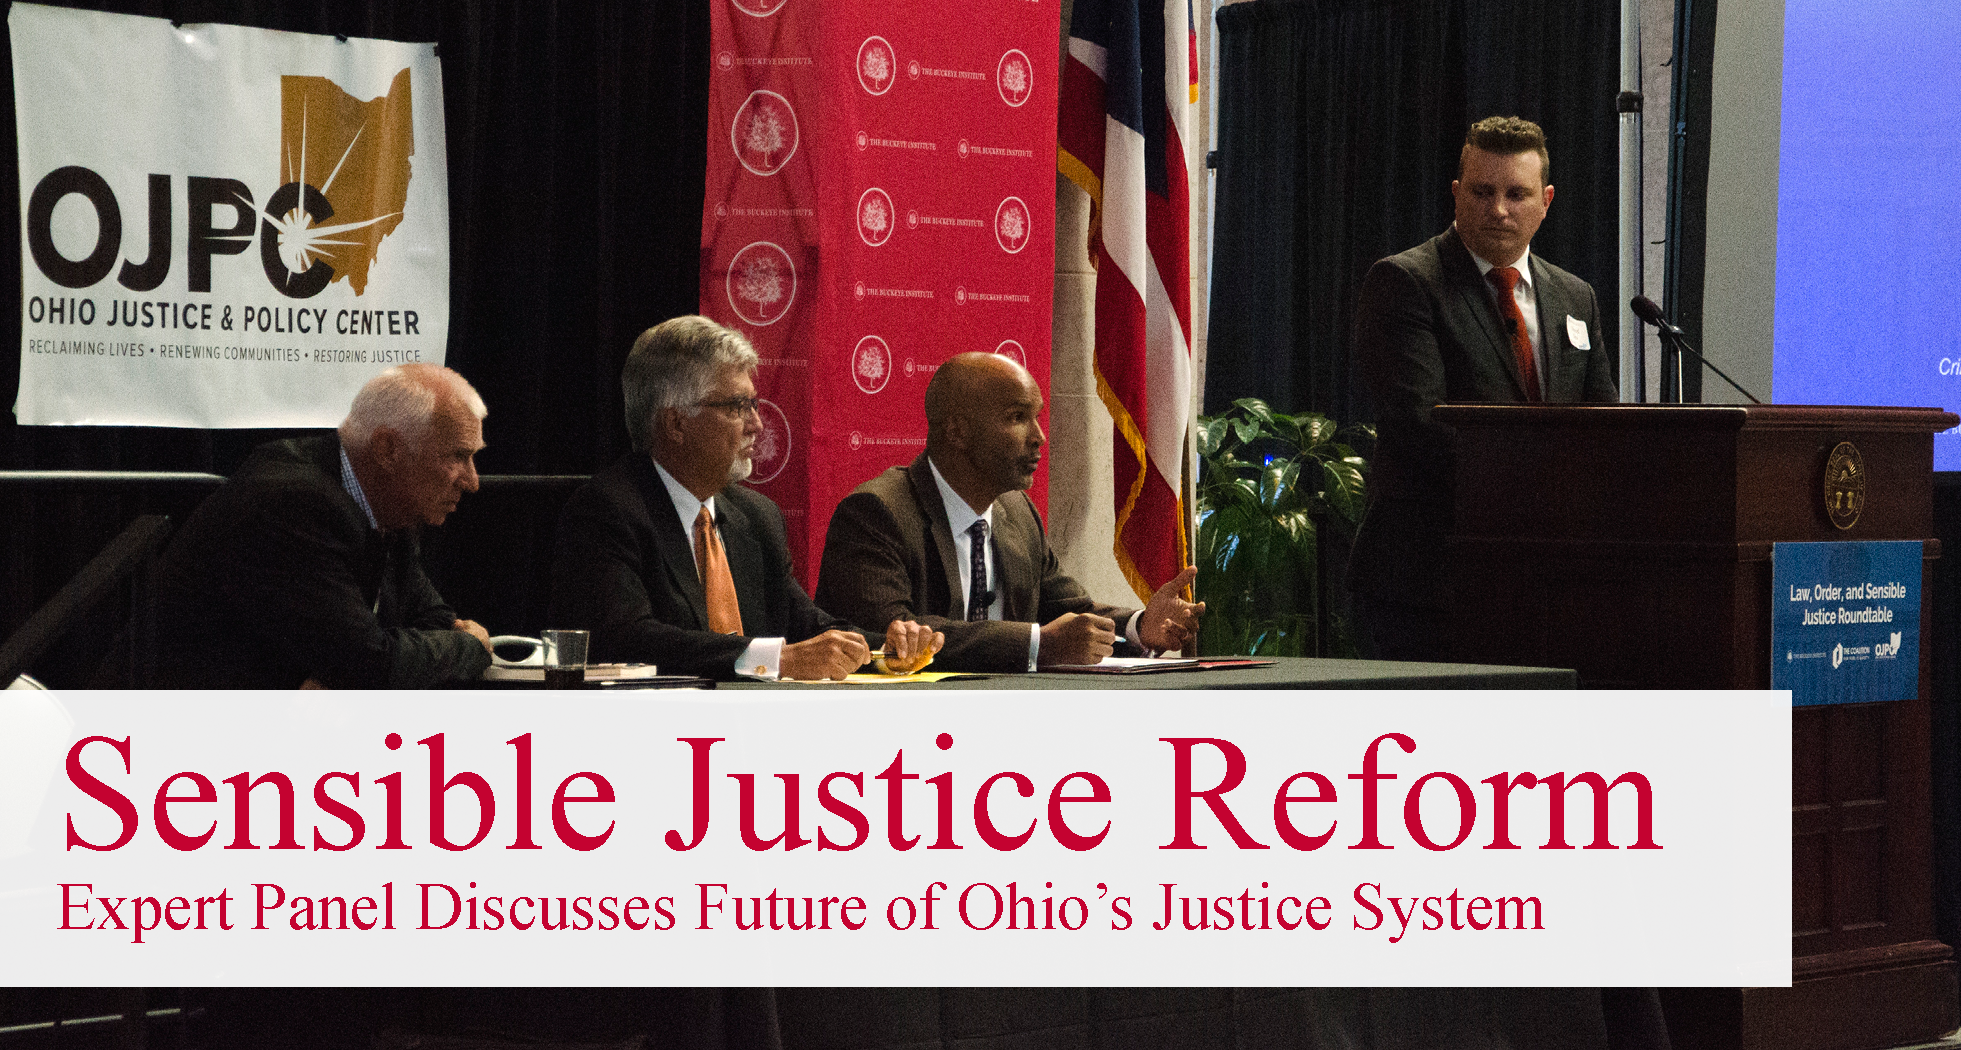 Justice Advocates Pursue Reform Solutions in Ohio